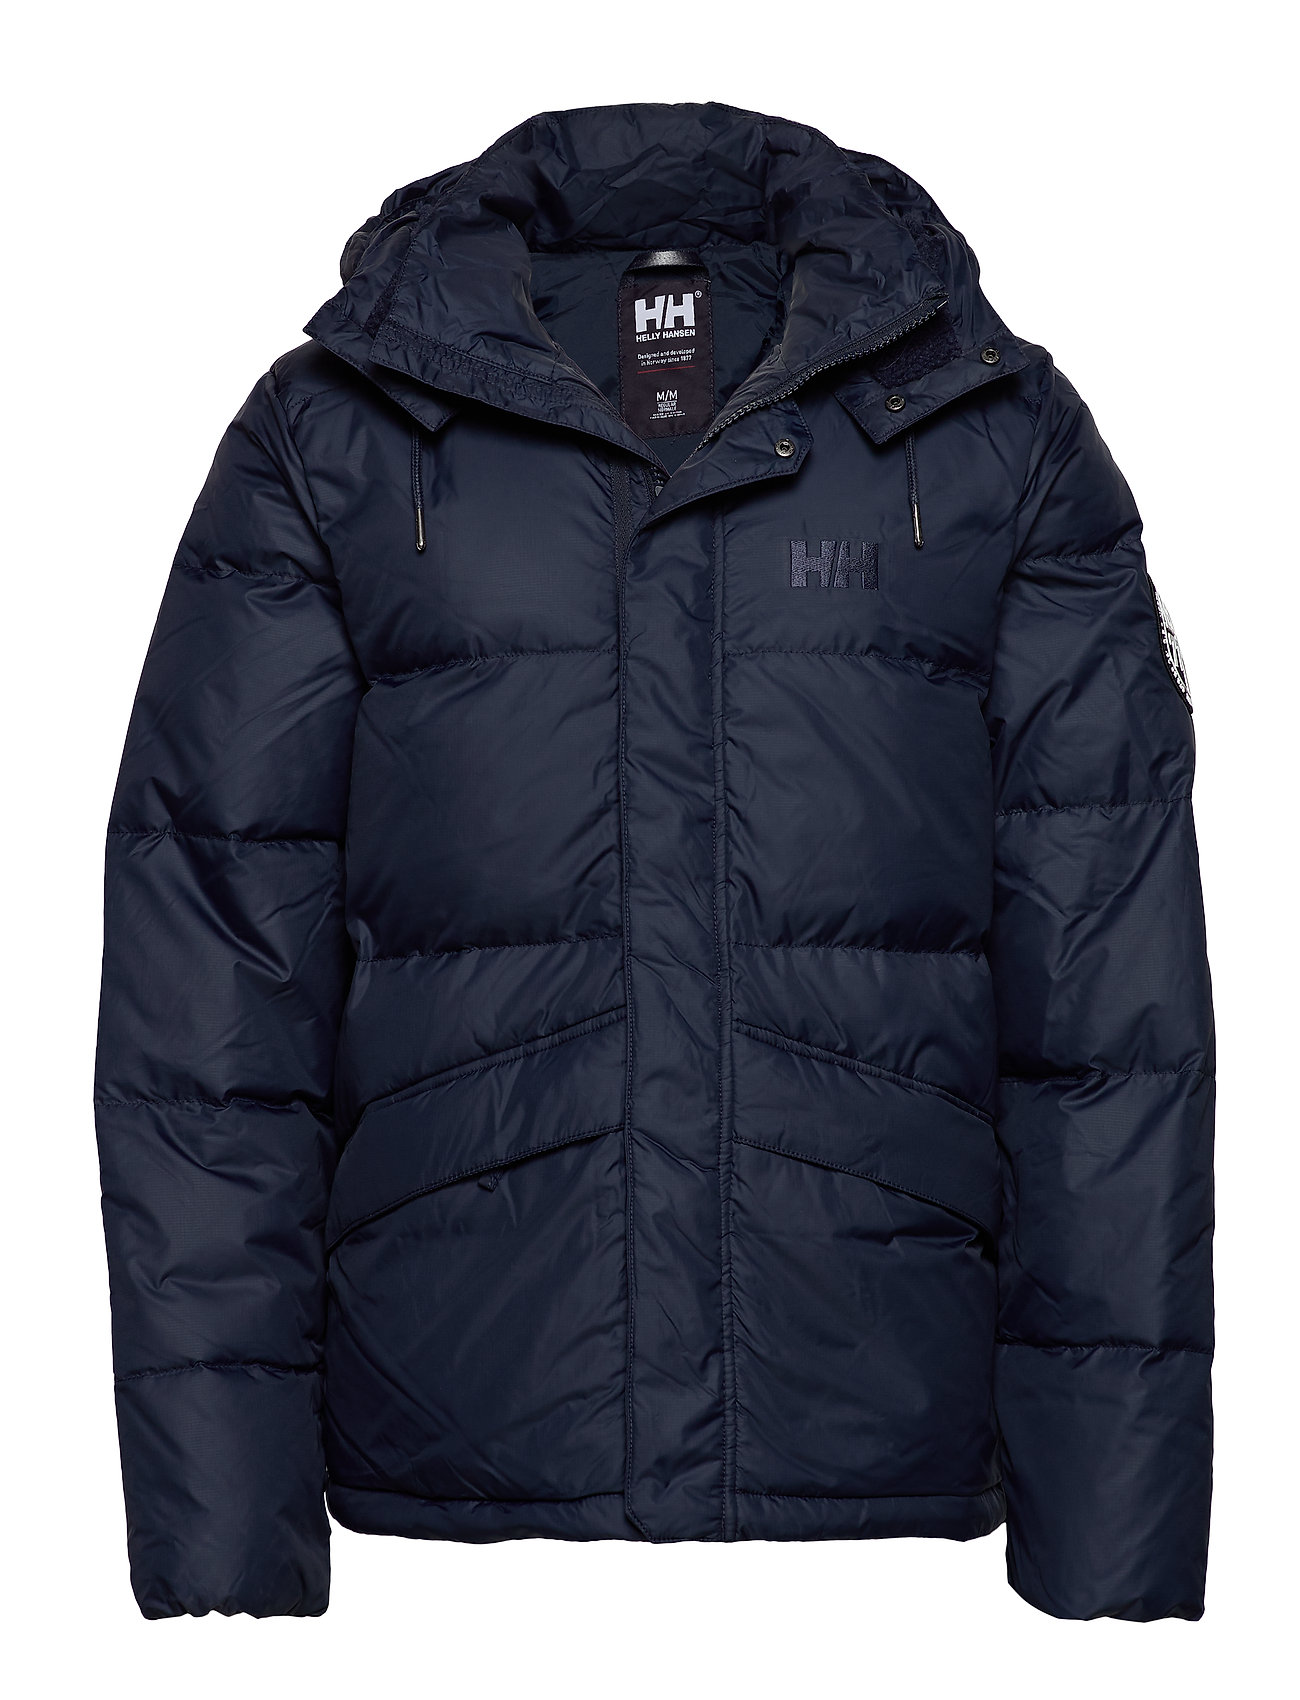 Helly Hansen 1877 DOWN JACKET - NAVY